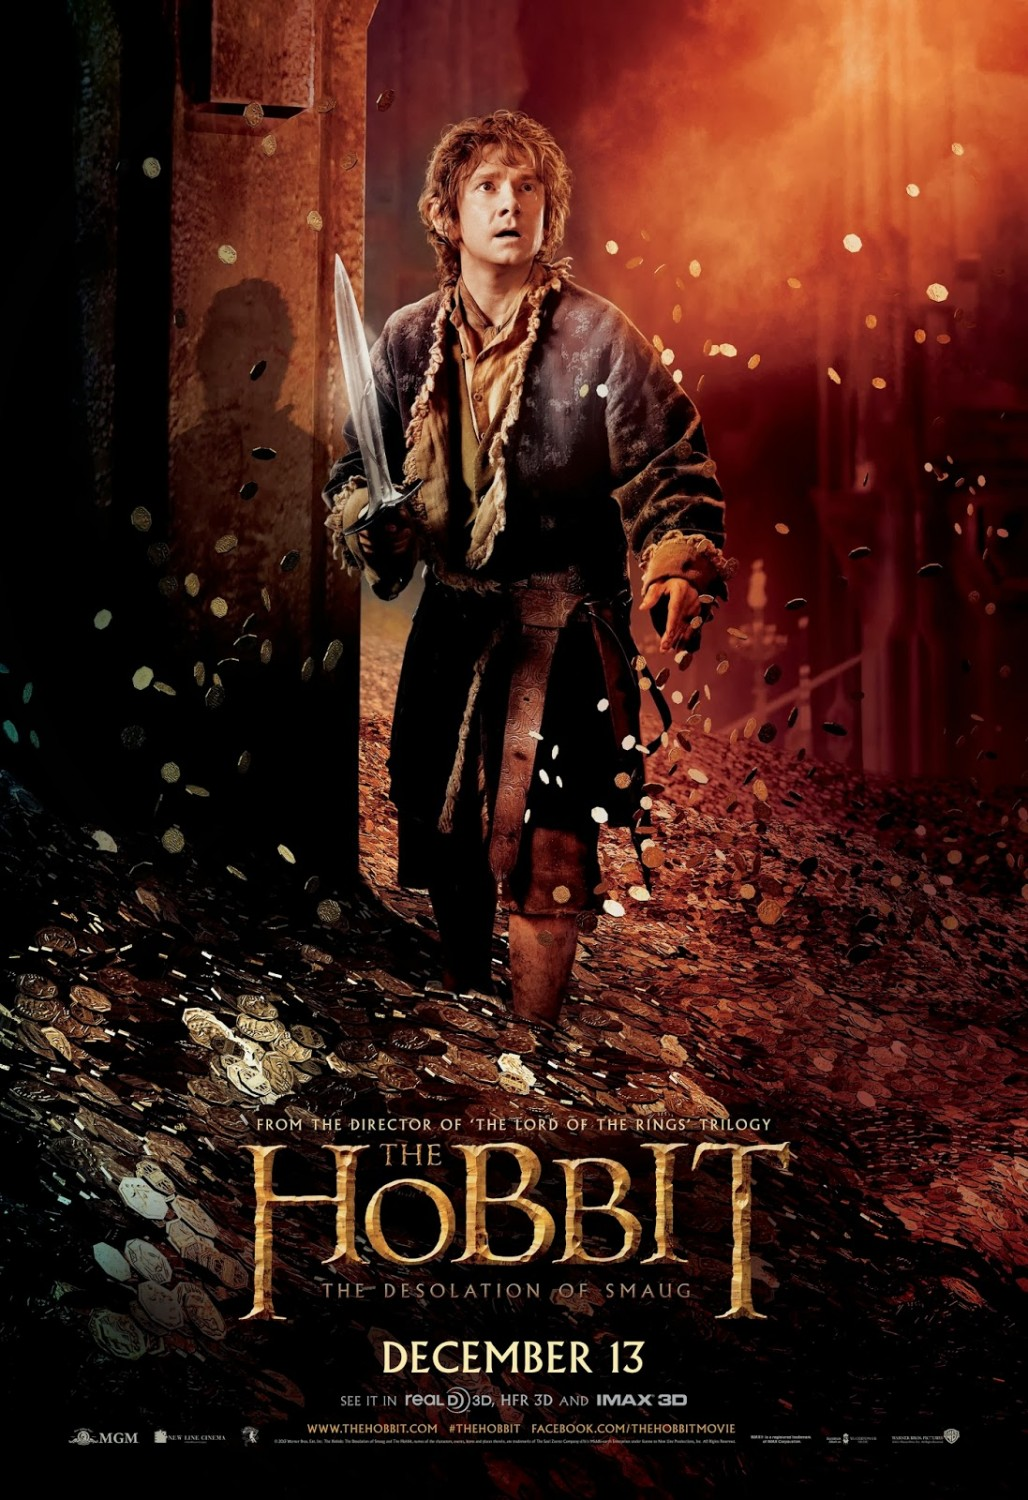 THE HOBBIT THE DESOLATION OF SMAUG-Official Poster Banner PROMO POSTER-07NOVEMBRO2013-01